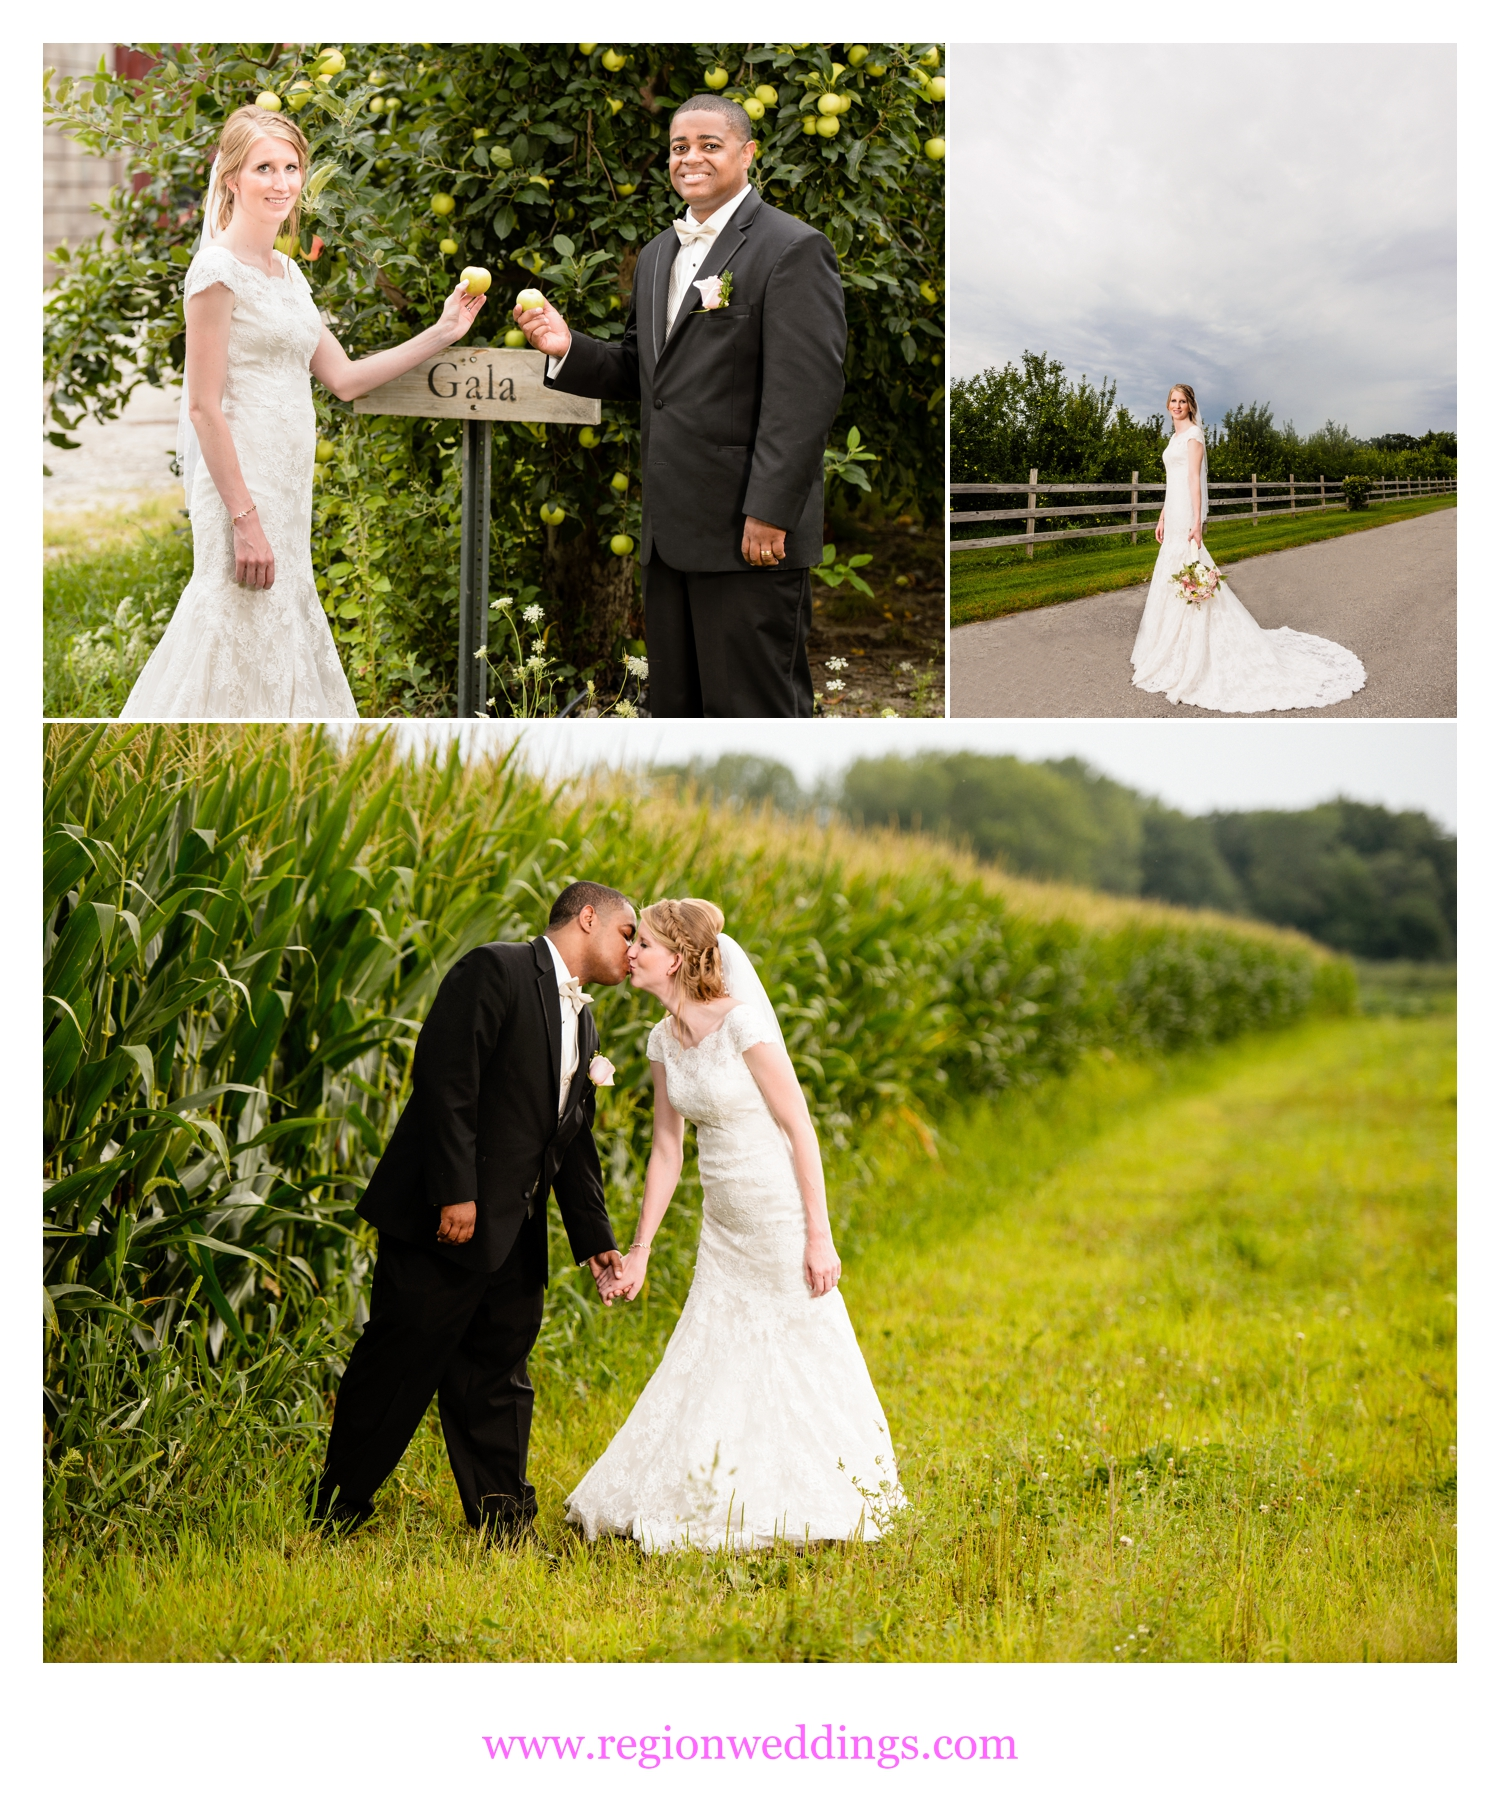 Wedding photos at County Line Orchard.